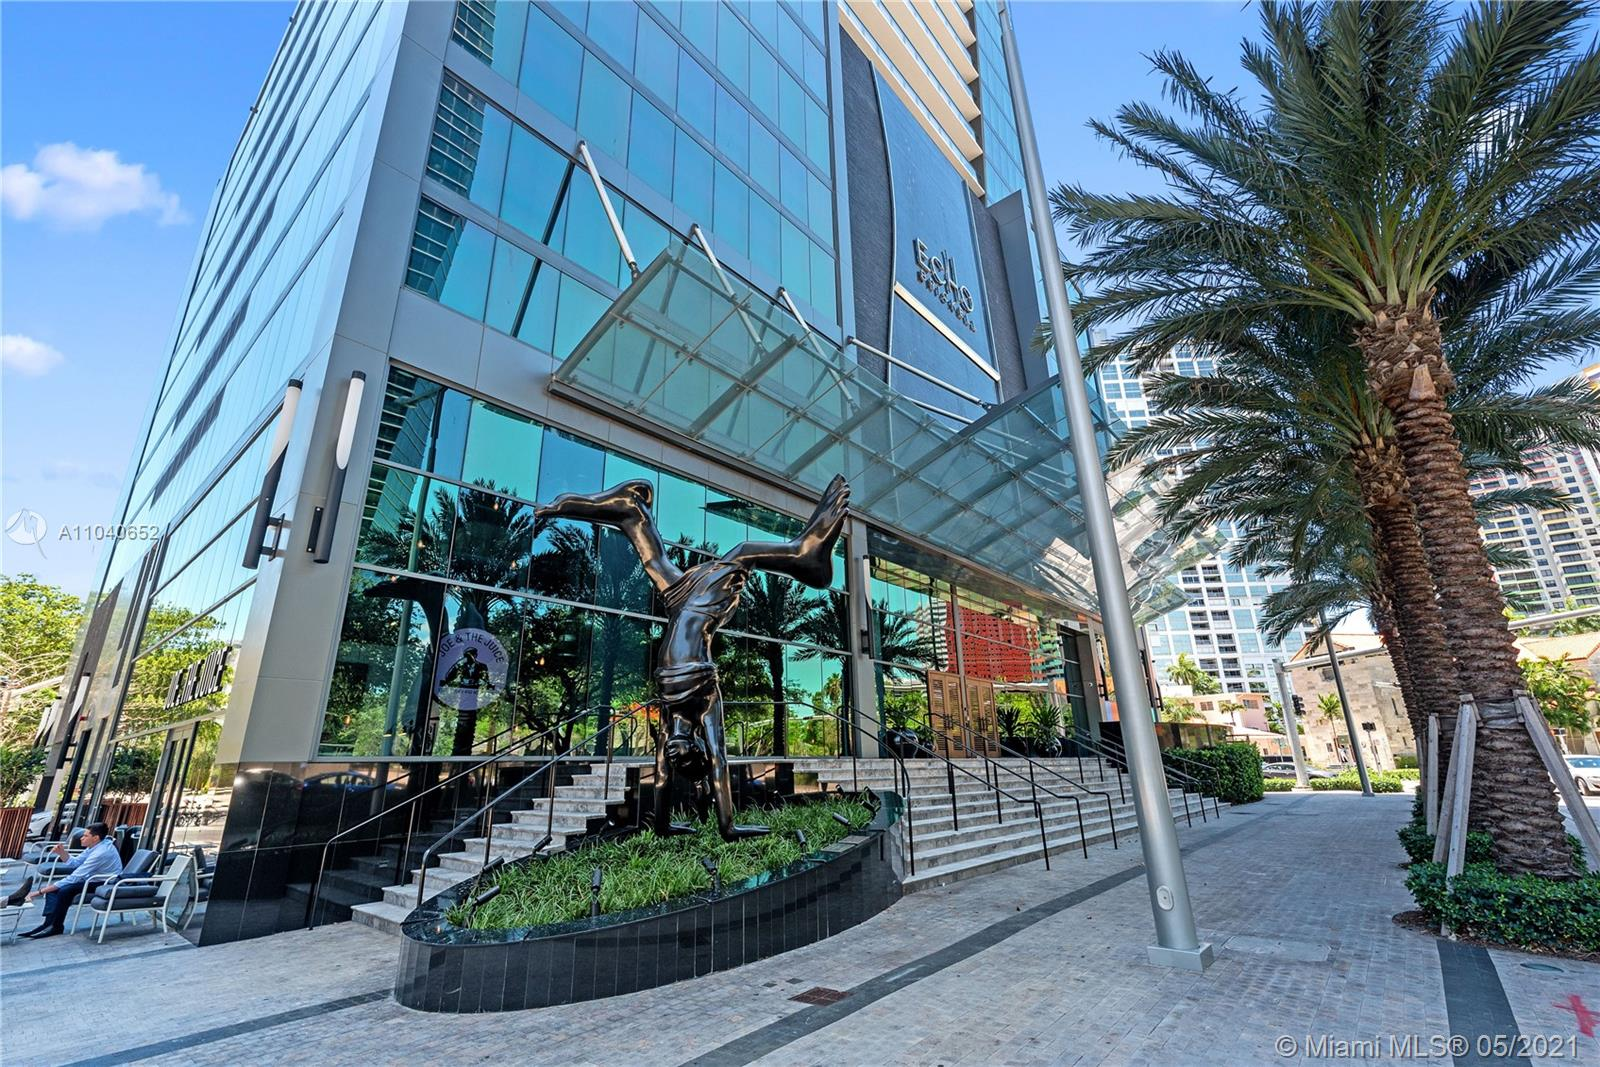 Amazing Bay/ocean view from spectacular 2BED/2.5BATH corner unit in high floor at Echo Brickell the newest boutique building in Brickell. Fully finished Flow thru marble flooring,Italian Glass cabinetry, marble countertops, top of the line appliances: SubZero, Wolf, Bosh, custom closet, electric blinds, expansive terrace with summer kitchen. SMART I-Home system (integrated audio speakers & video lighting system) and Bluetooth/fob controlled front door, robotic parking system, 2 parking spaces valet serviced. Infinity-edge pool w/resort style, gym and space, 24/7 concierge, valet, pet walker and more. Tenant occupied. To show we need to coordinate with tenant within 48 hours in advance. Tenant can show 2 times per week Monday - Friday between 2-5 PM.